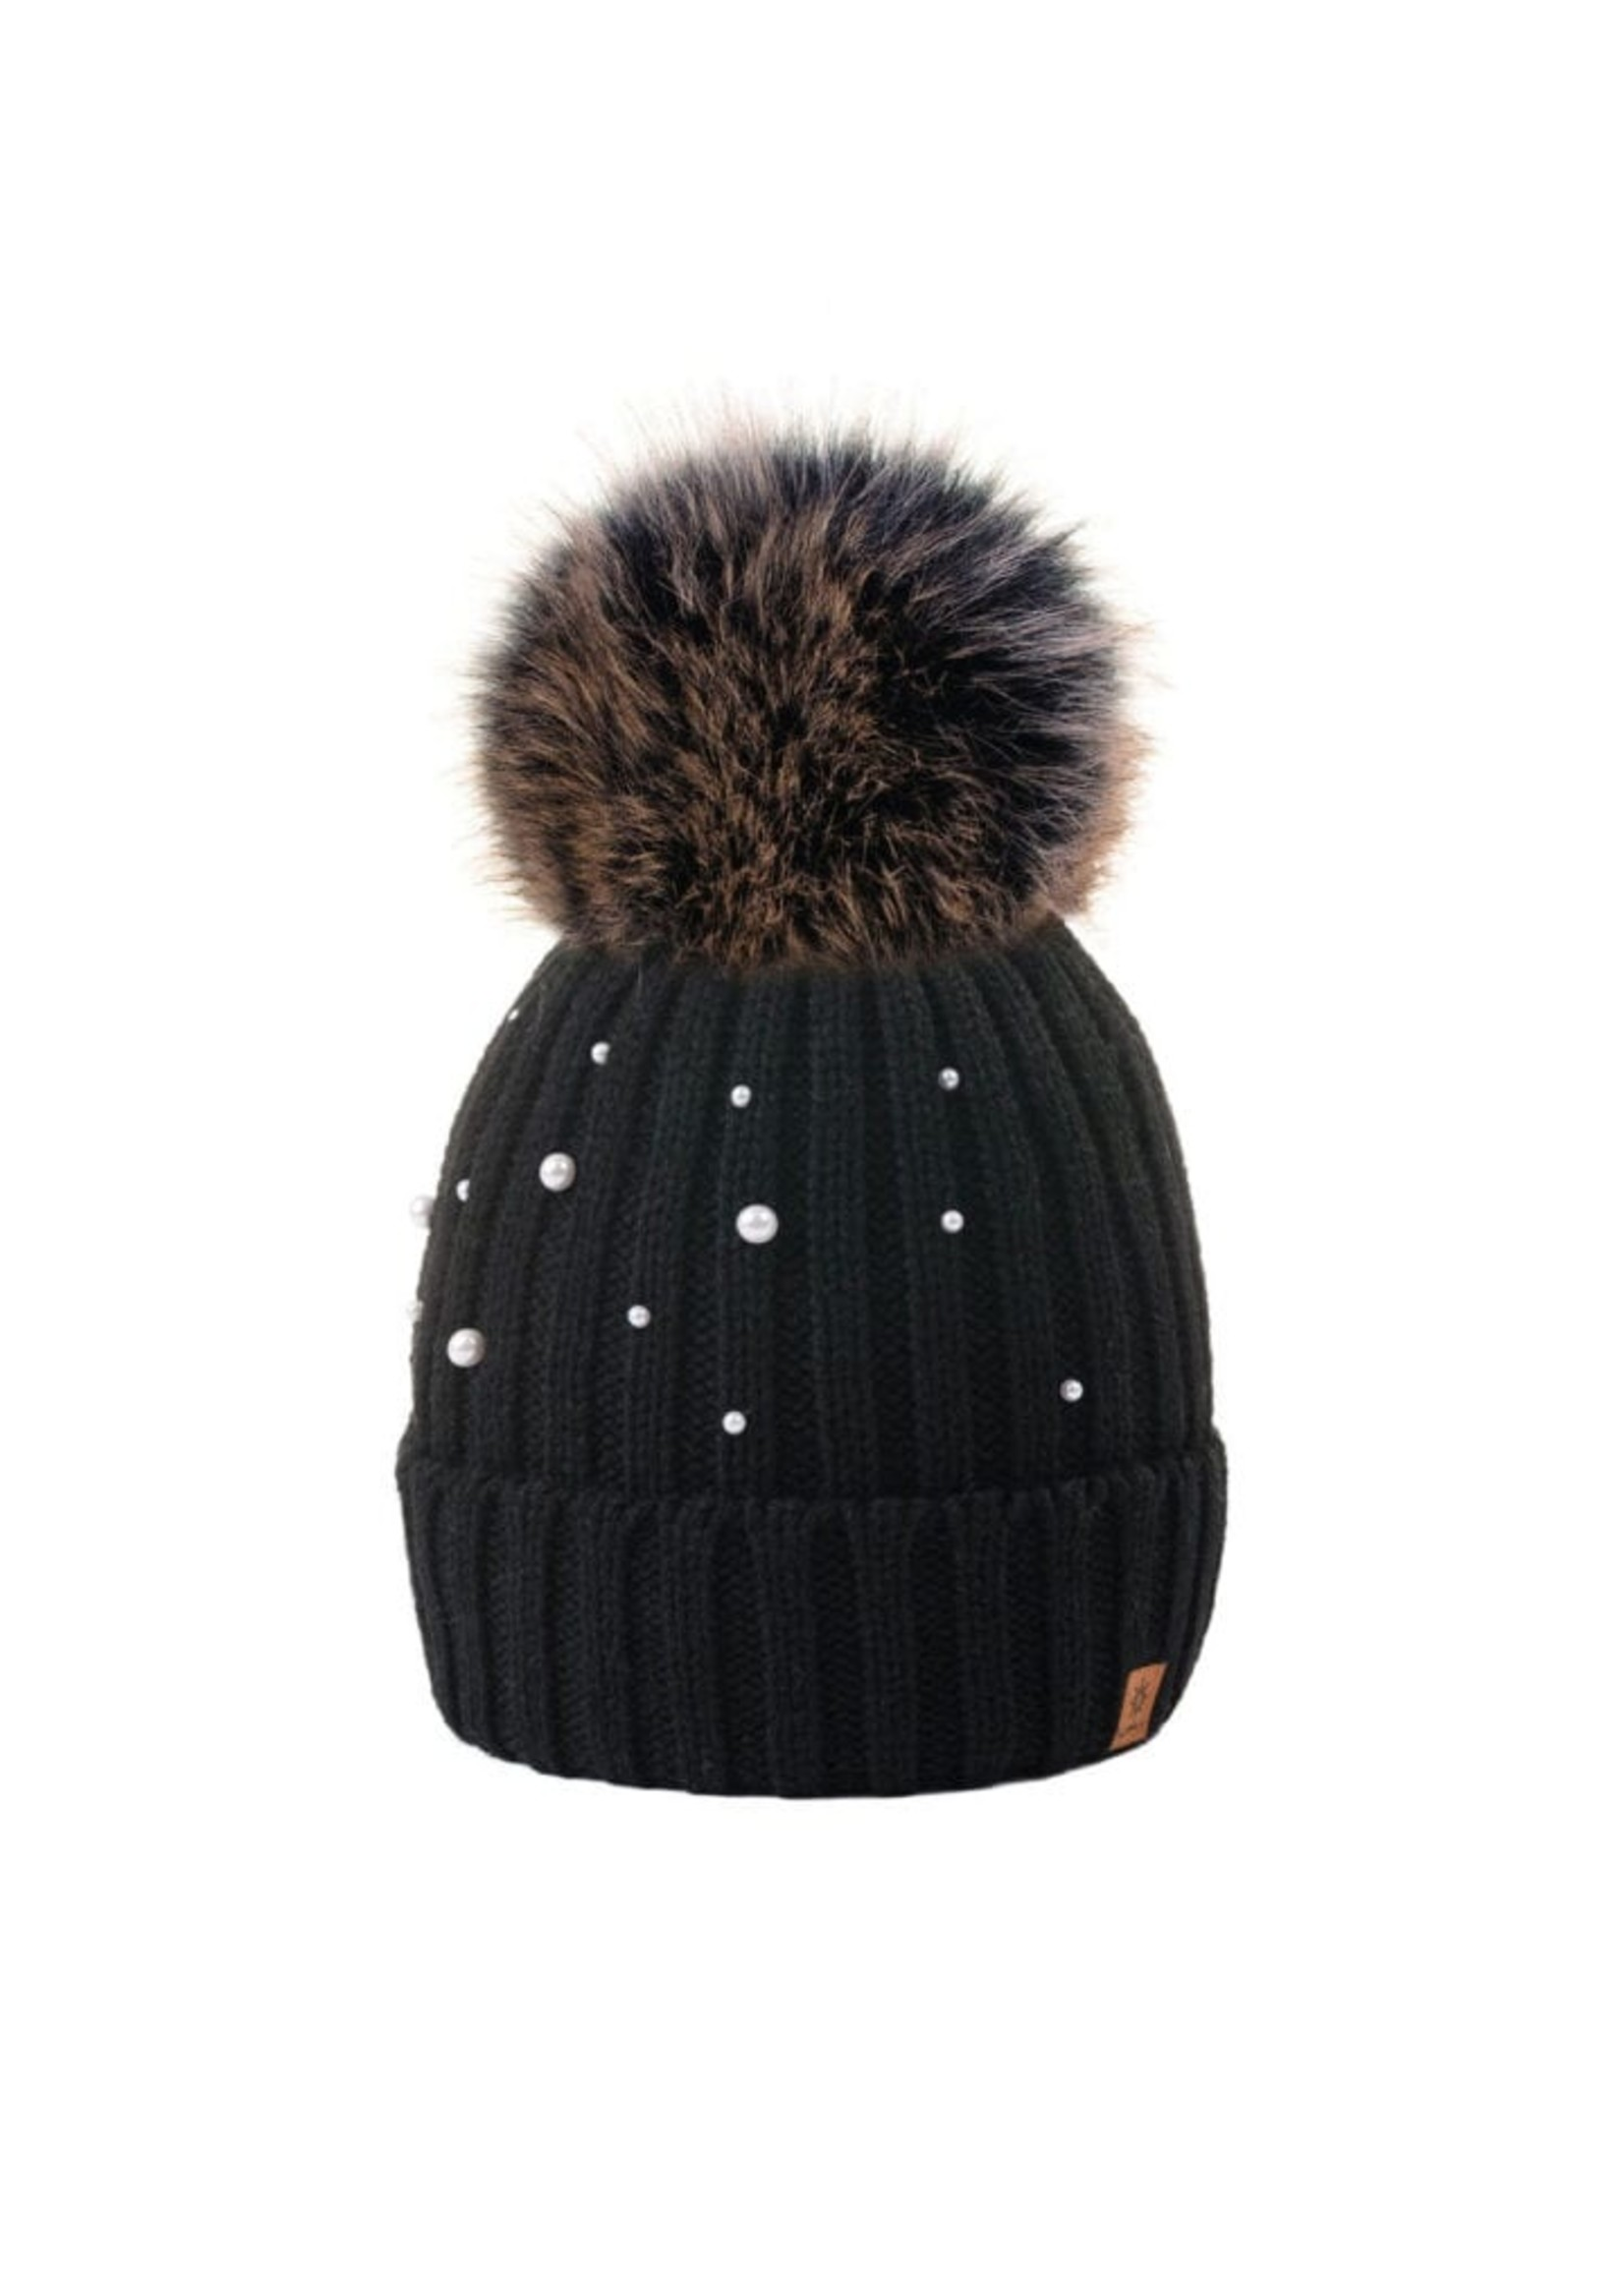 Woolk Toque w/ Pearls and PomPom